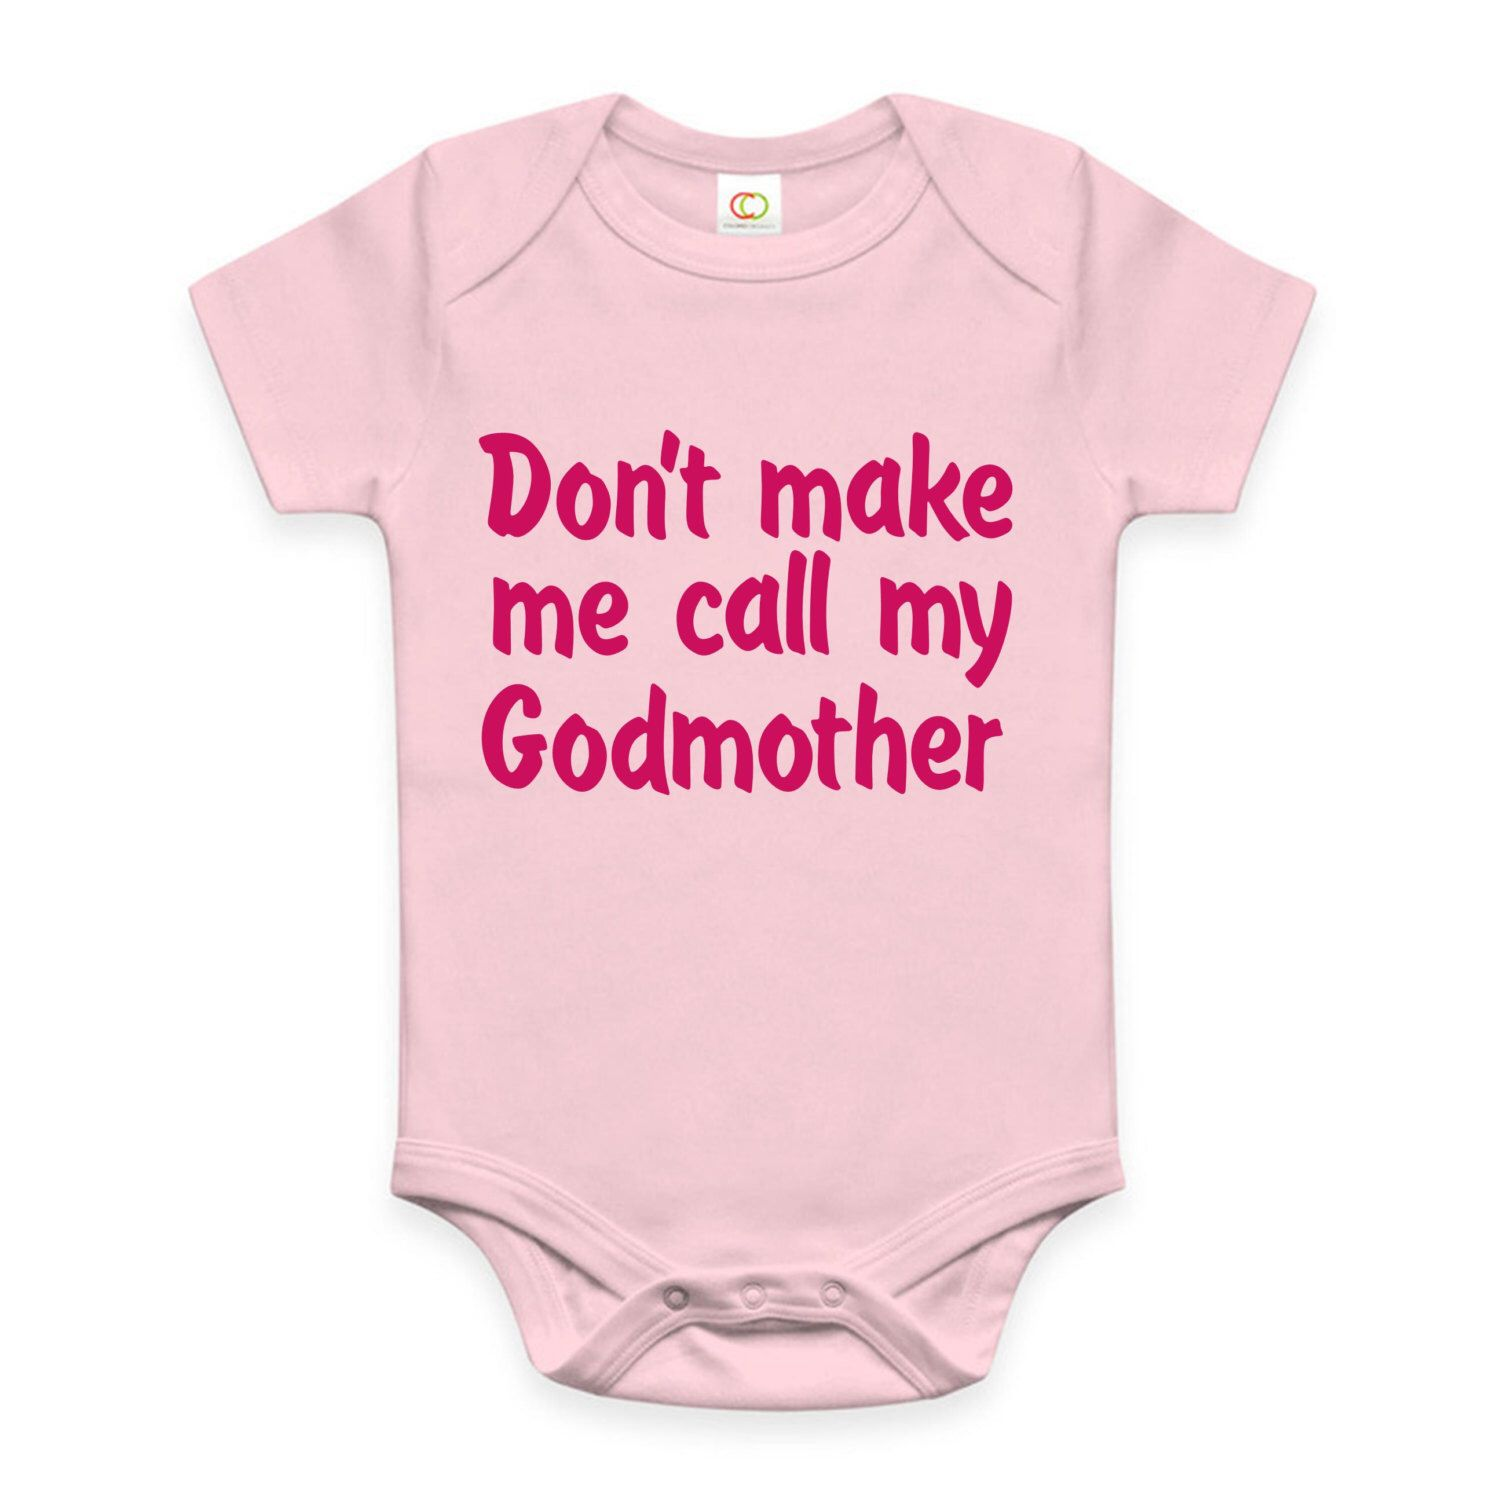 b7bd0e92a Don't make me call my Godmother or Godfather funny baby shirt bodysuit  Godson baby